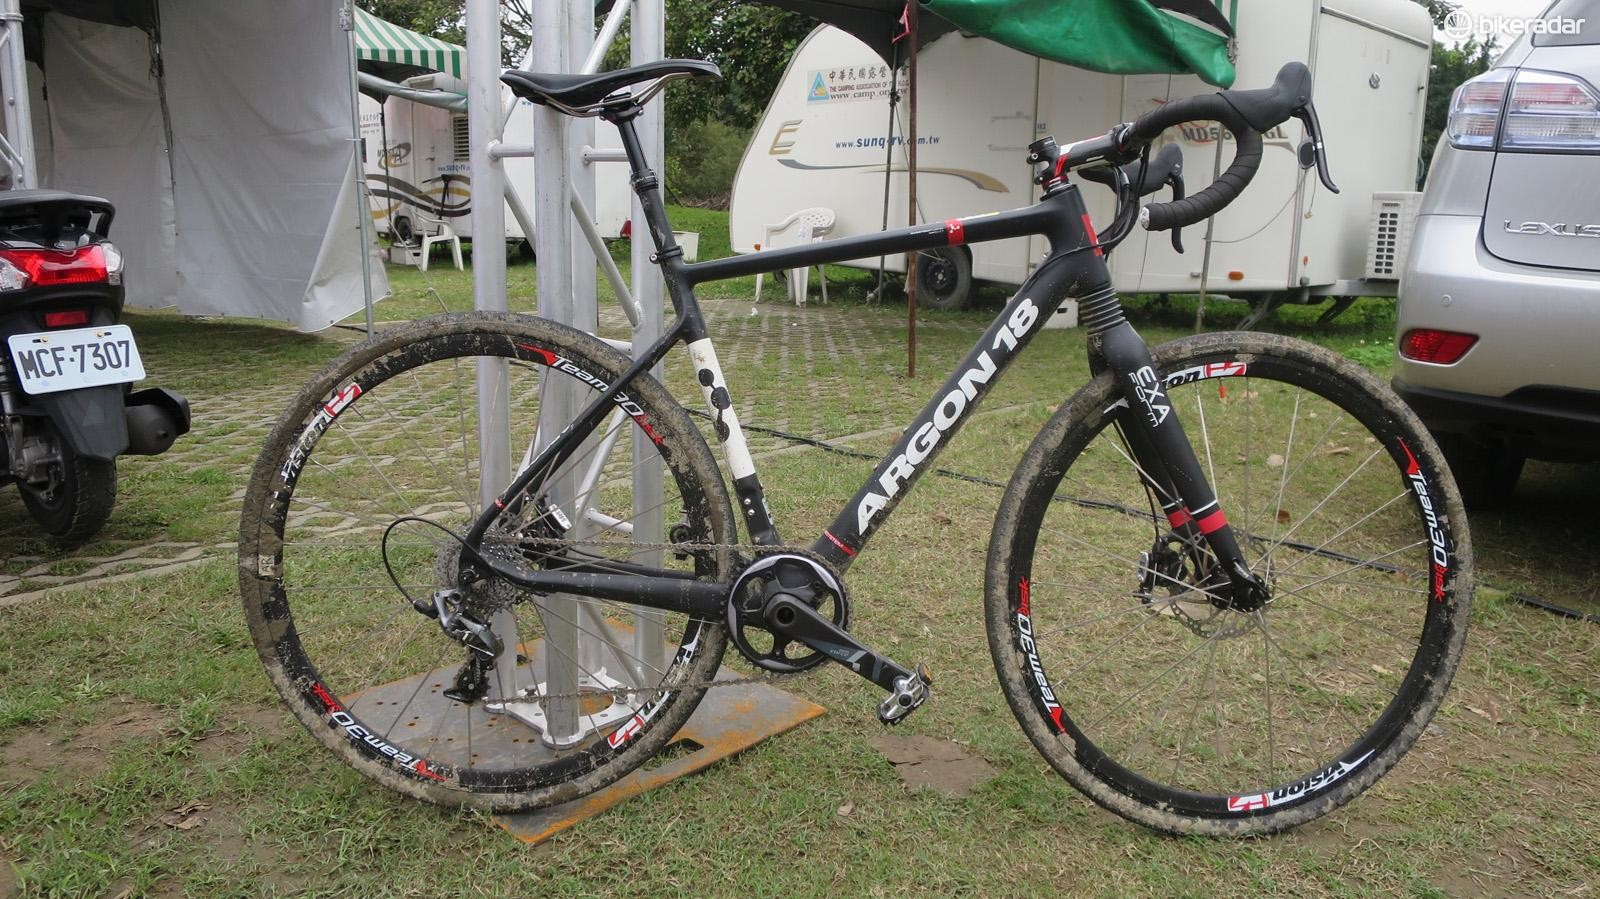 KS (Kind Shock) let us try out this highly modified Argon 18 X-Road with integrated dropper post and retro fit front suspension